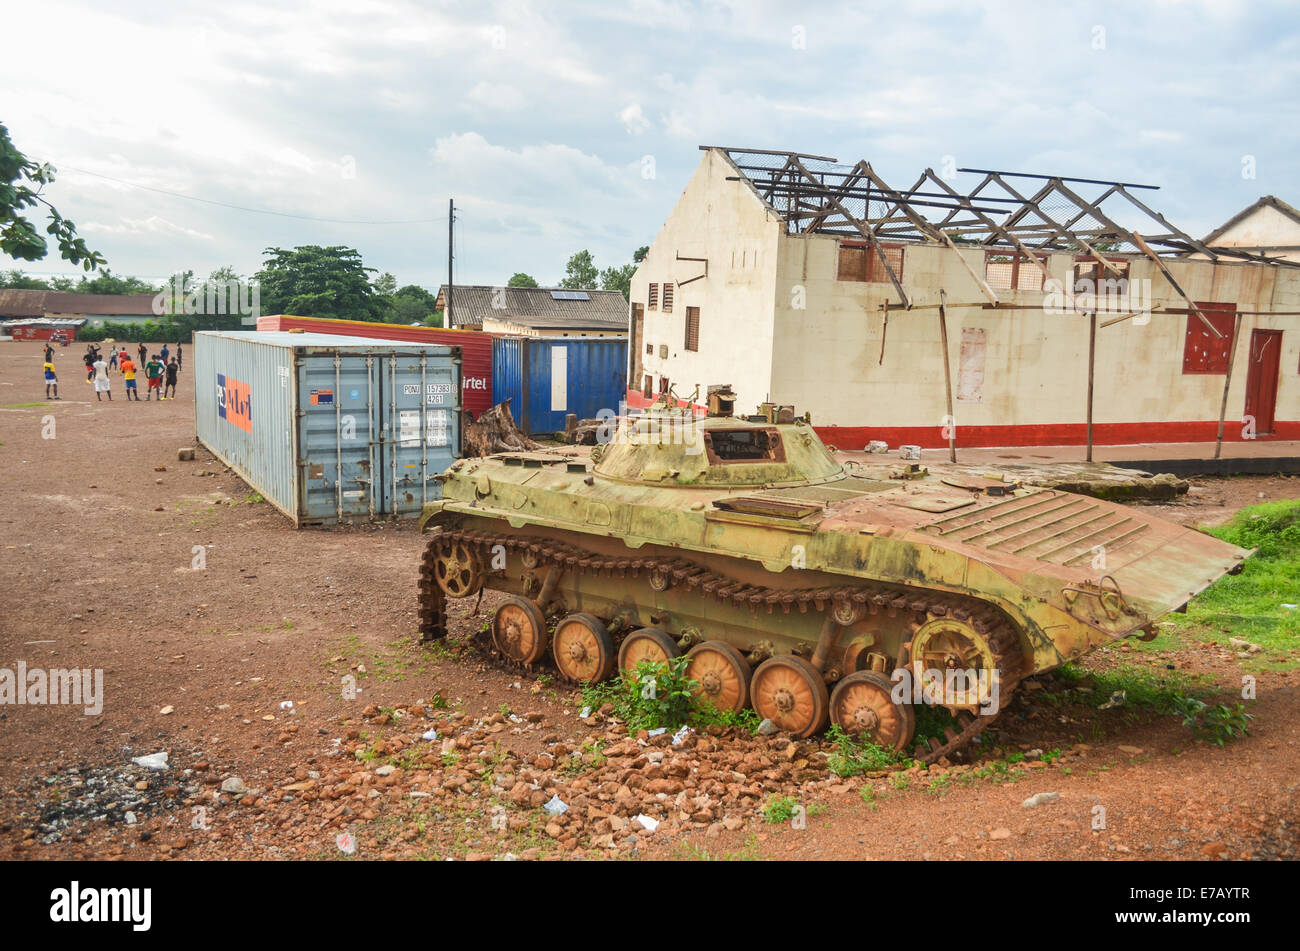 Remains of the civil war, a tank on a playground in Sierra Leone near Freetown - Stock Image